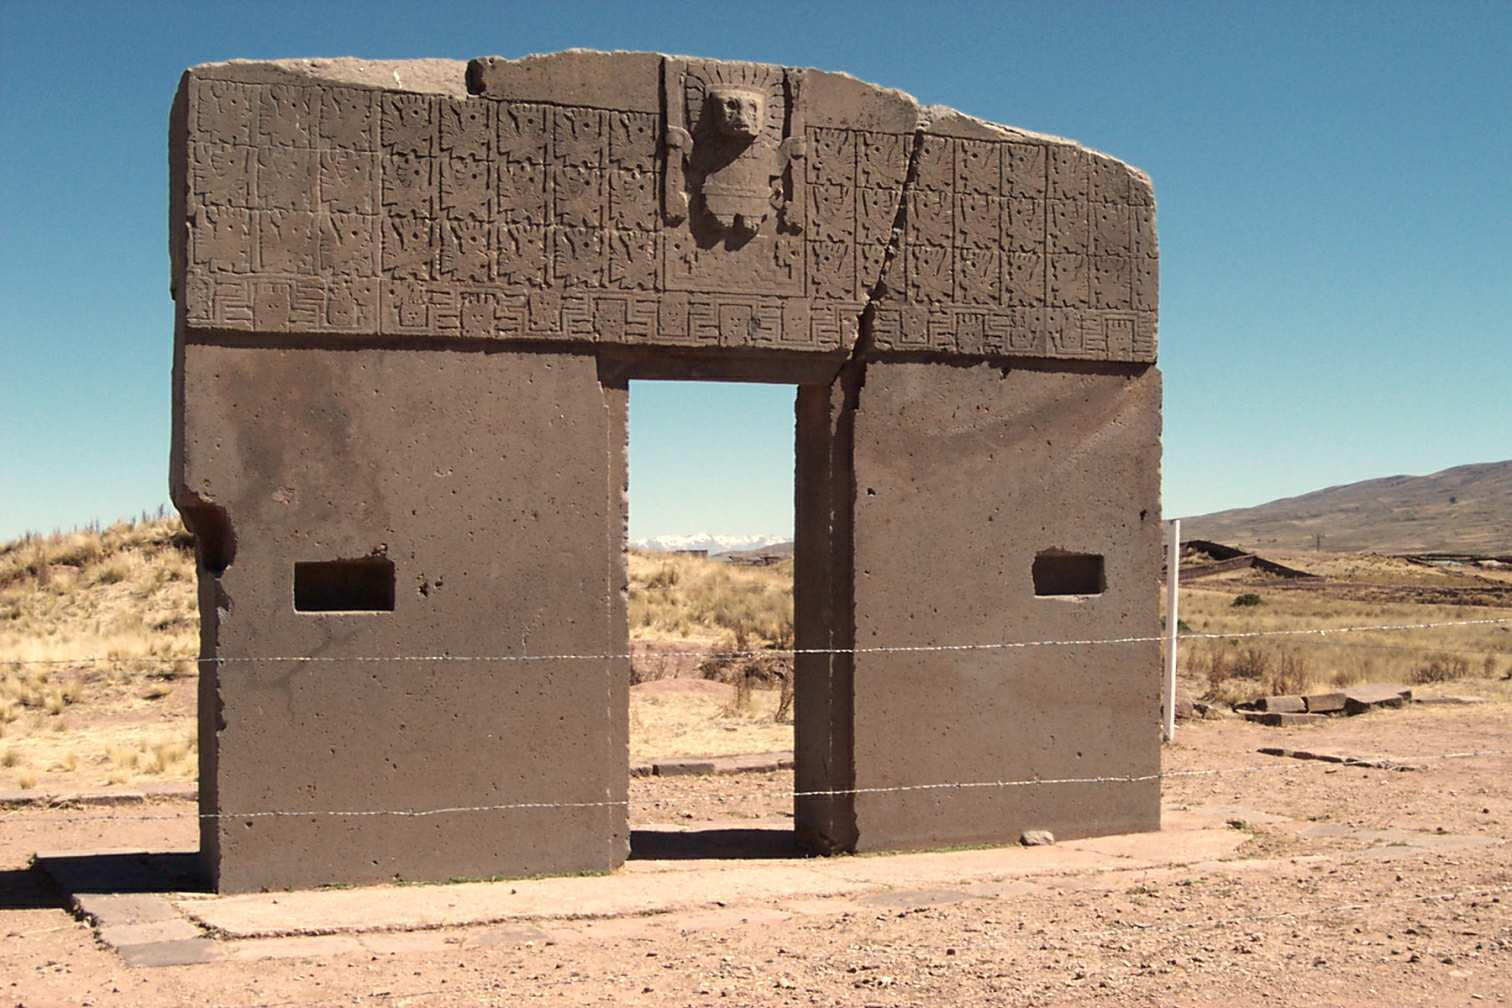 The Gateway of the Sun from the Tiwanaku civilization in Bolivia